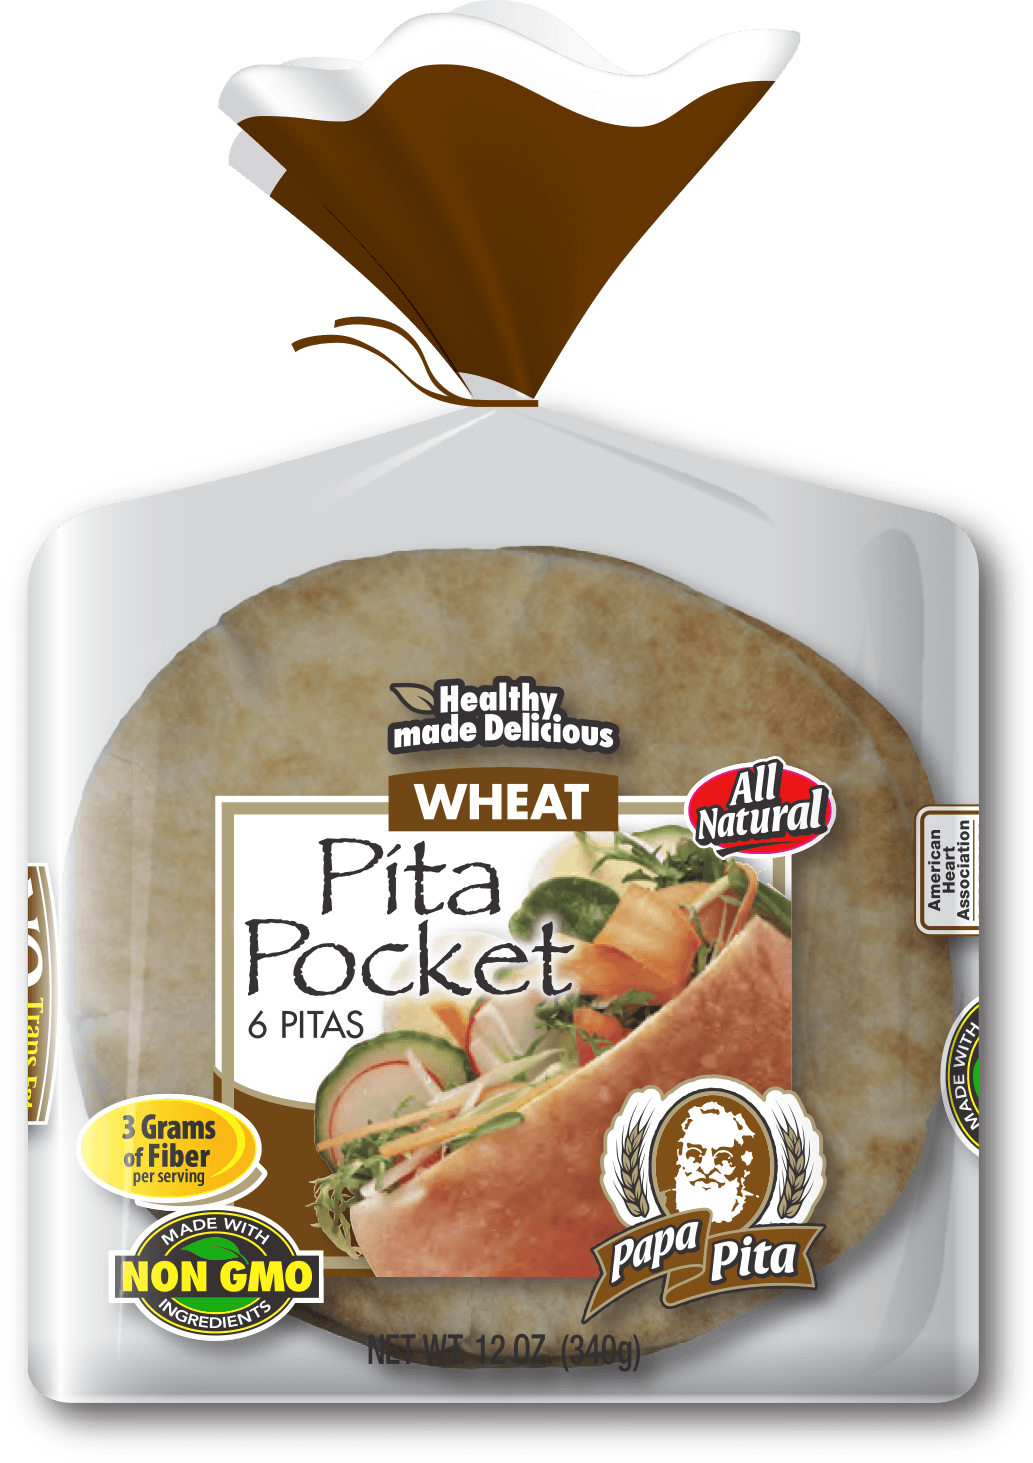 _0005_Papa-Pita-Wheat-Pocket-Bread